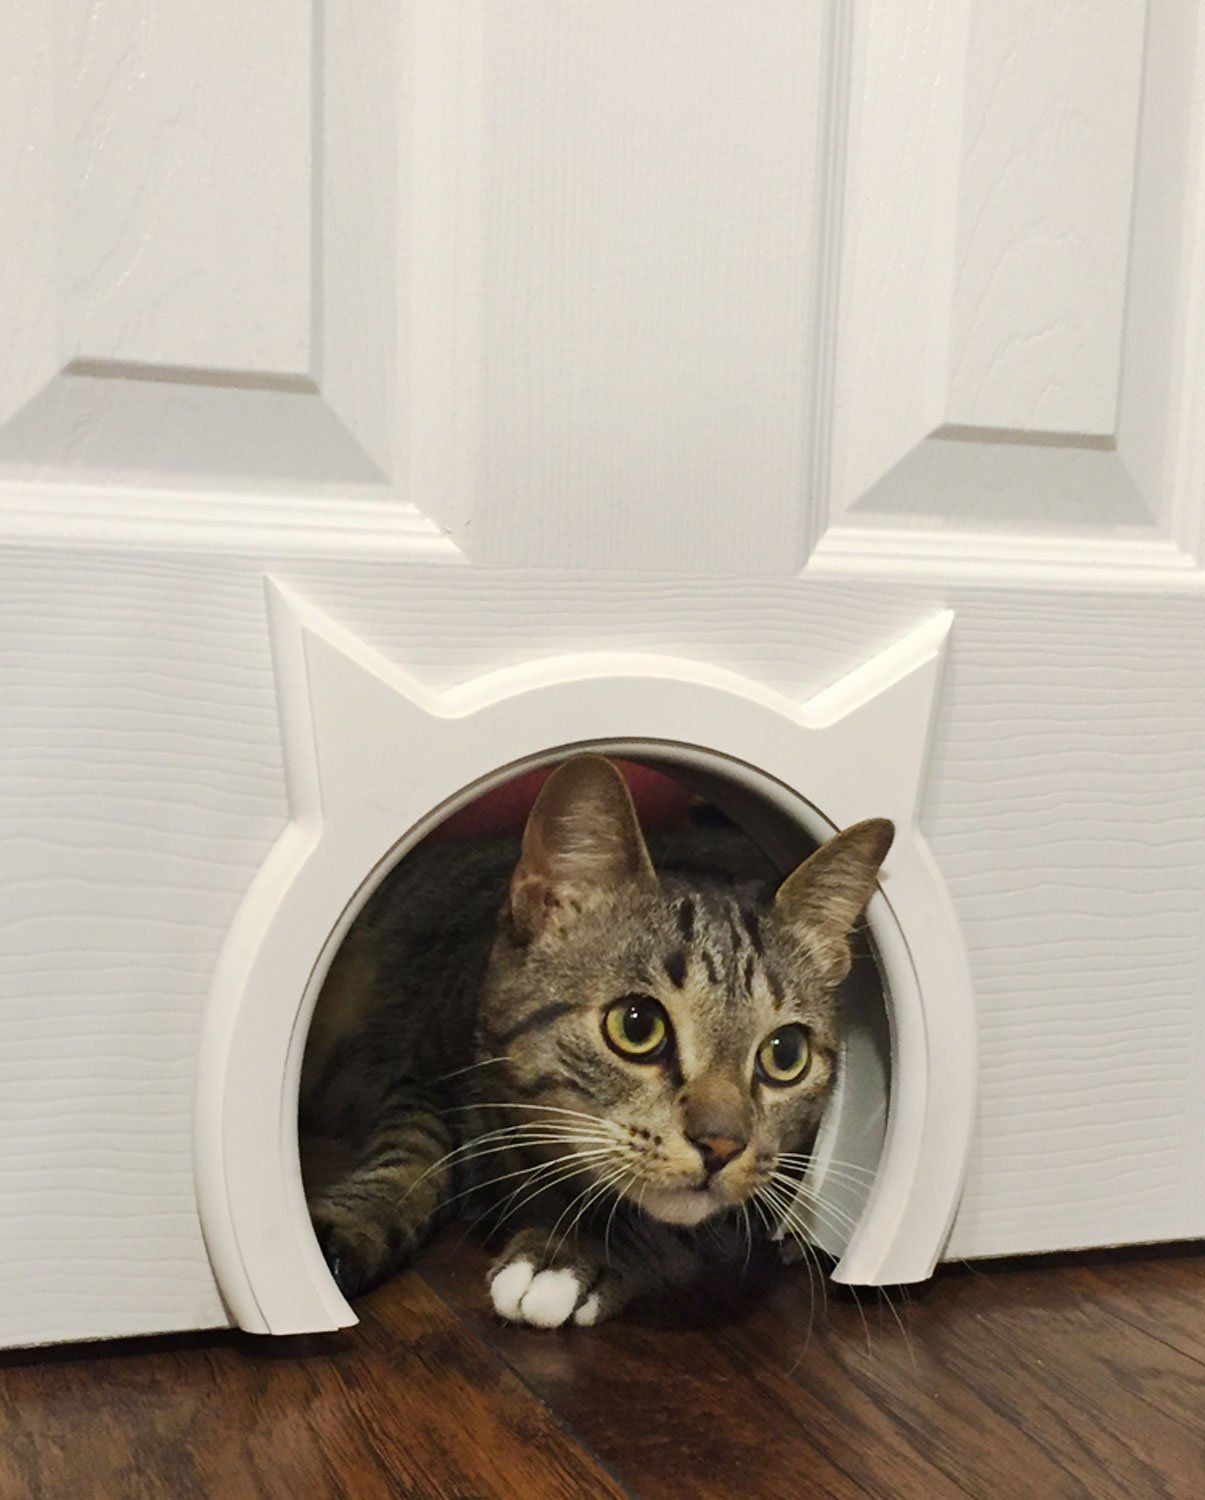 The kitty pass interior cat door pet door - Interior door with pet door installed ...